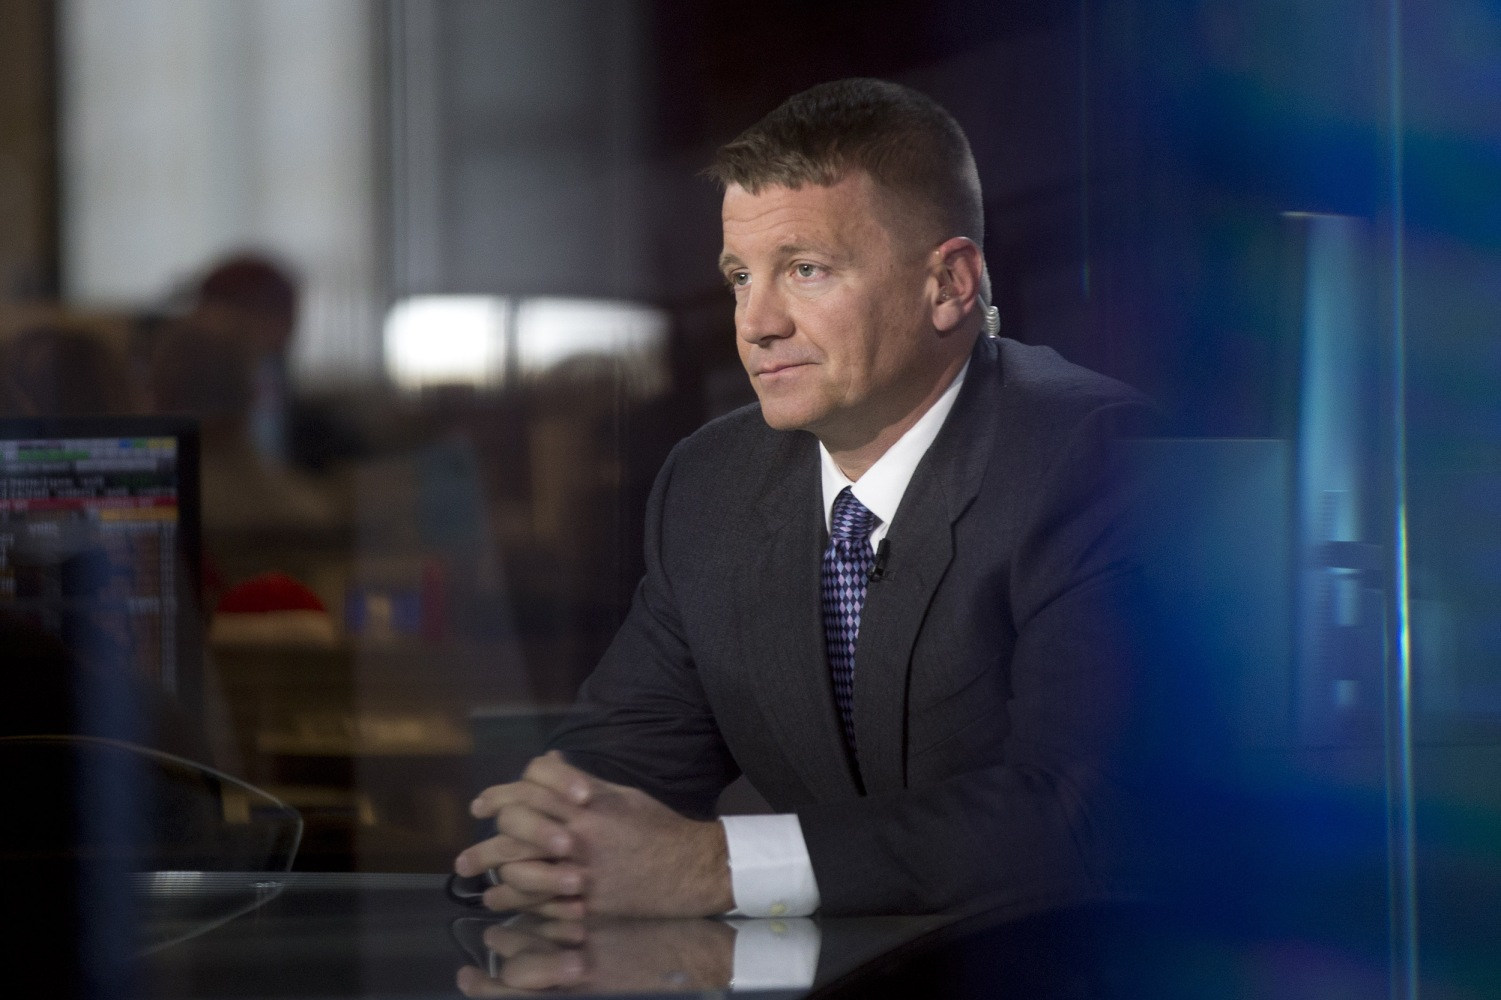 Blackwater Founder Linked To Trump-Putin 'Back-Channel' Effort